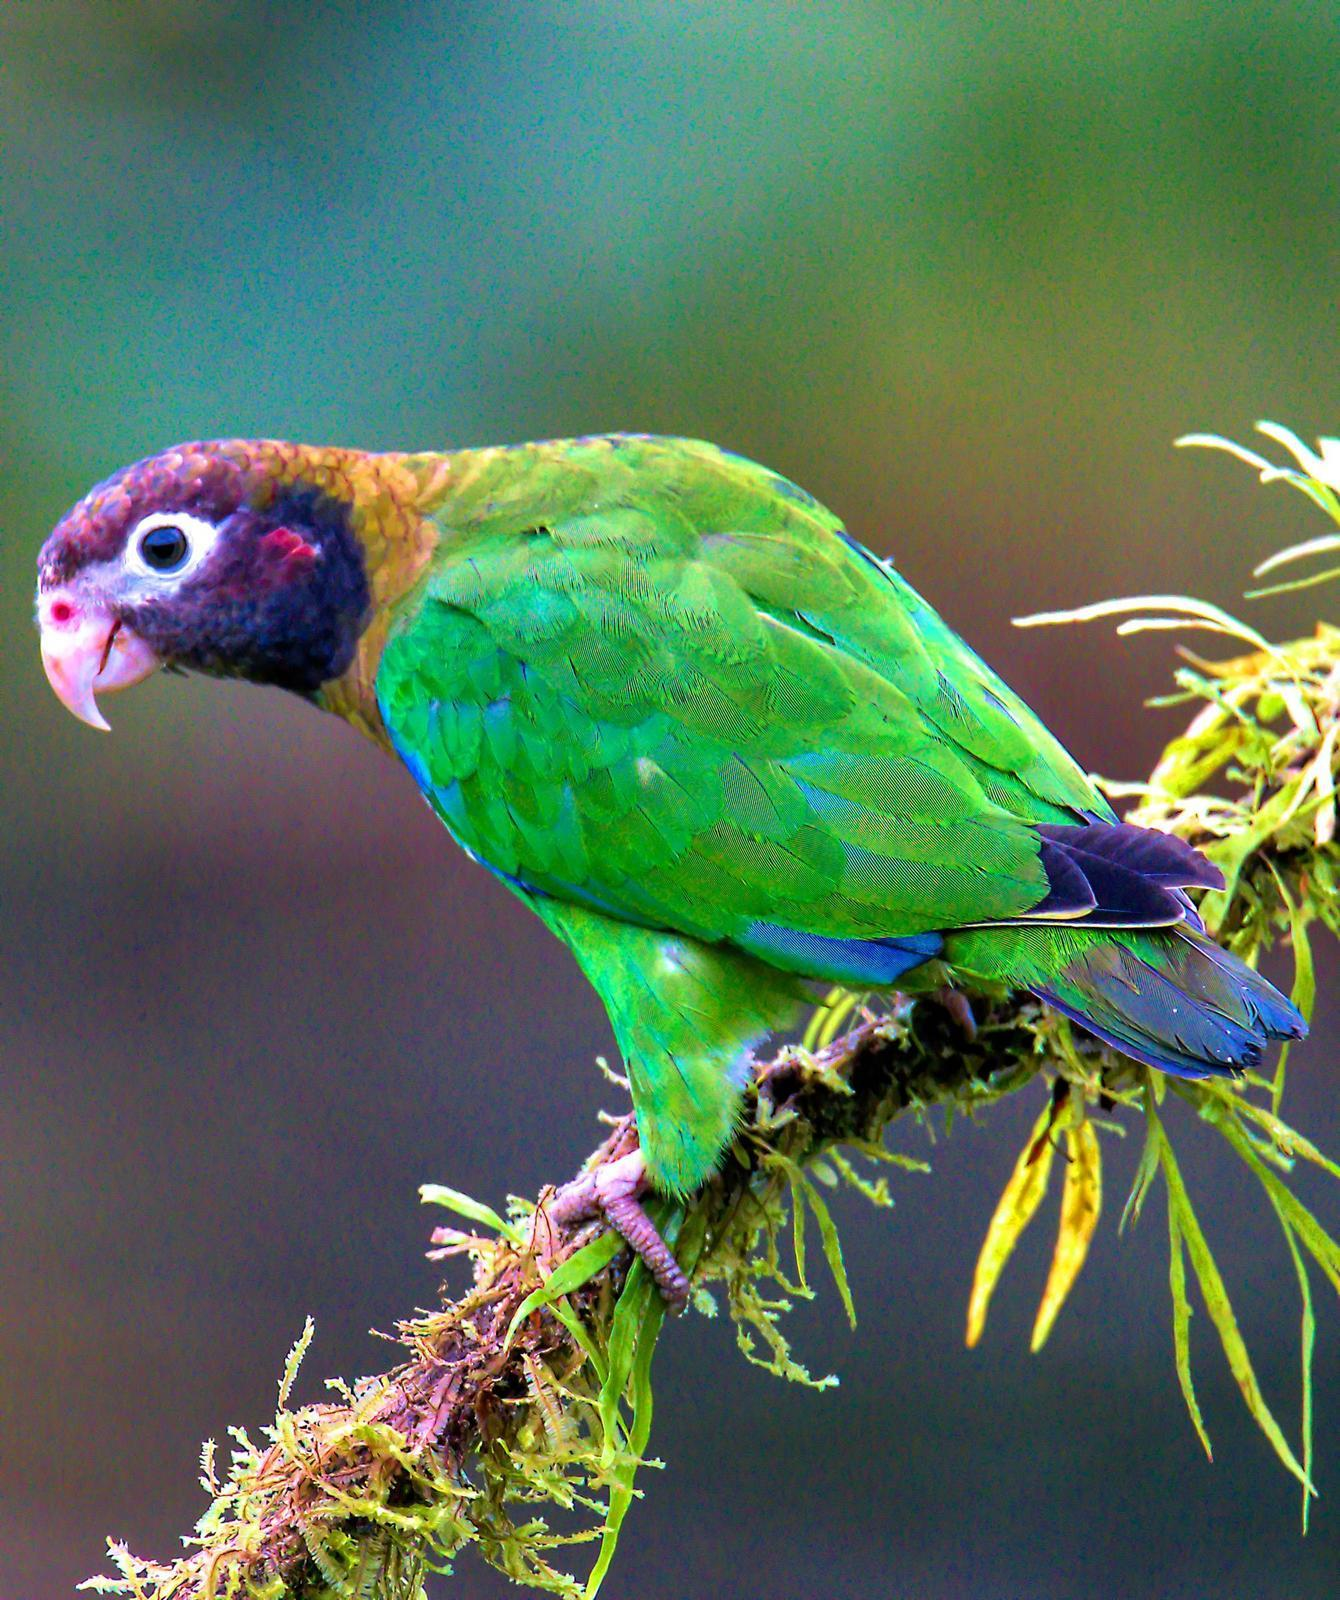 Brown-hooded Parrot Photo by Dan Tallman